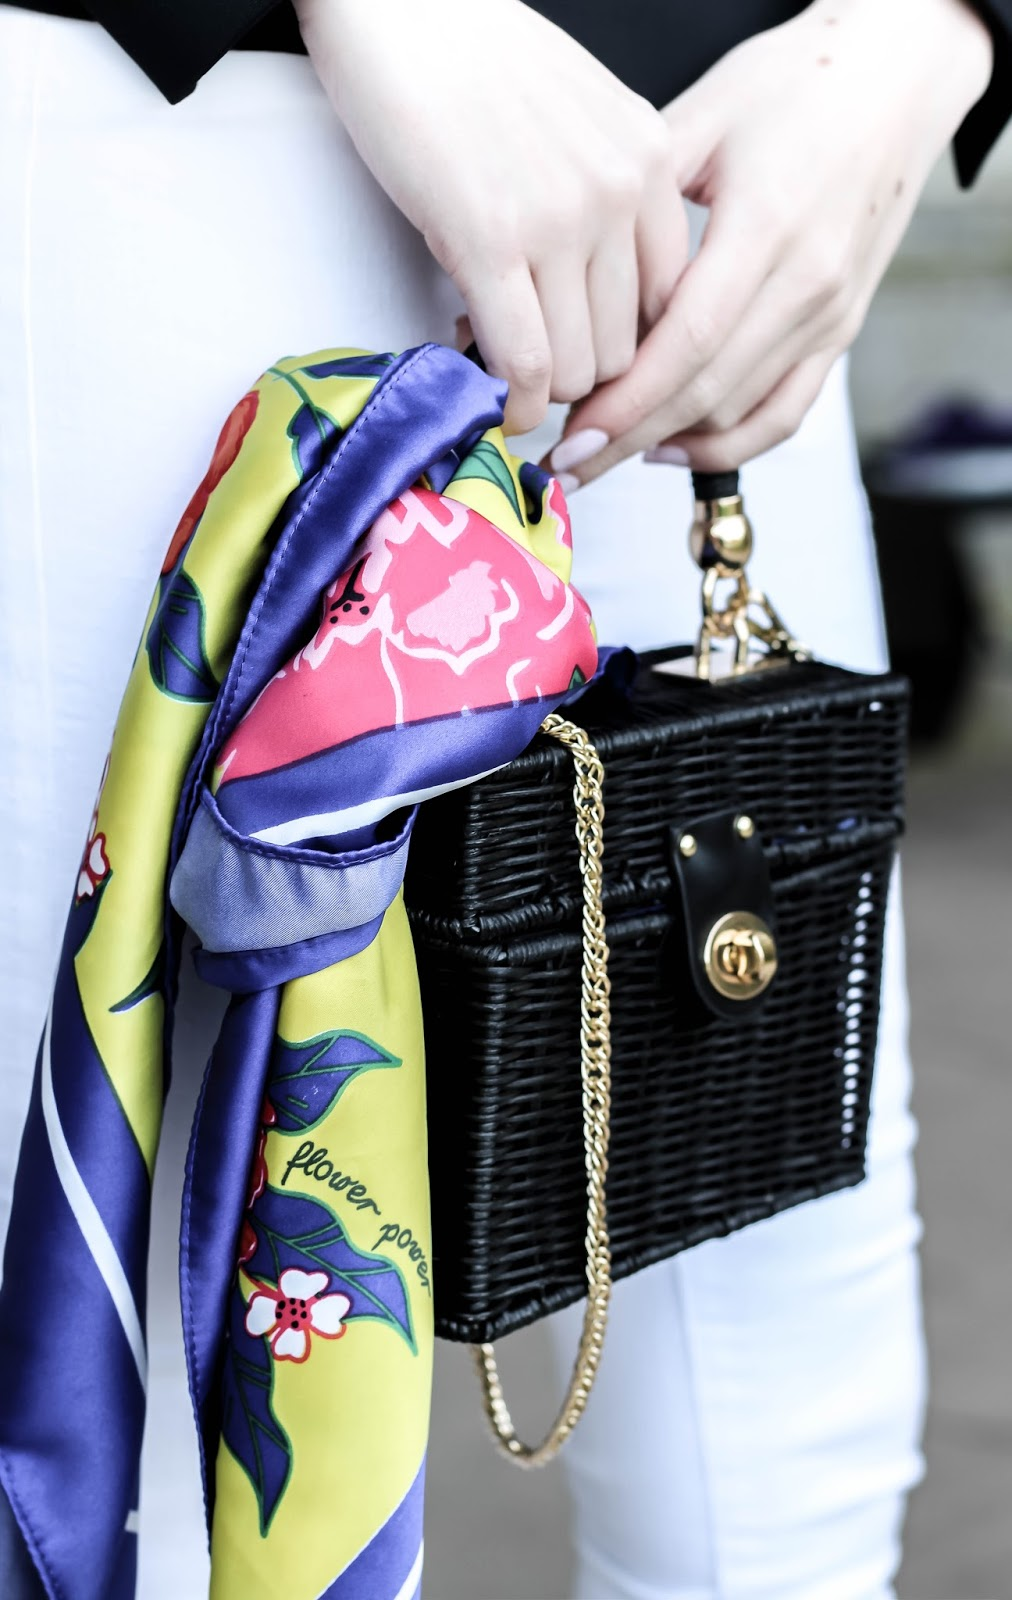 How to Stylishly Attach a Scarf to a Bag